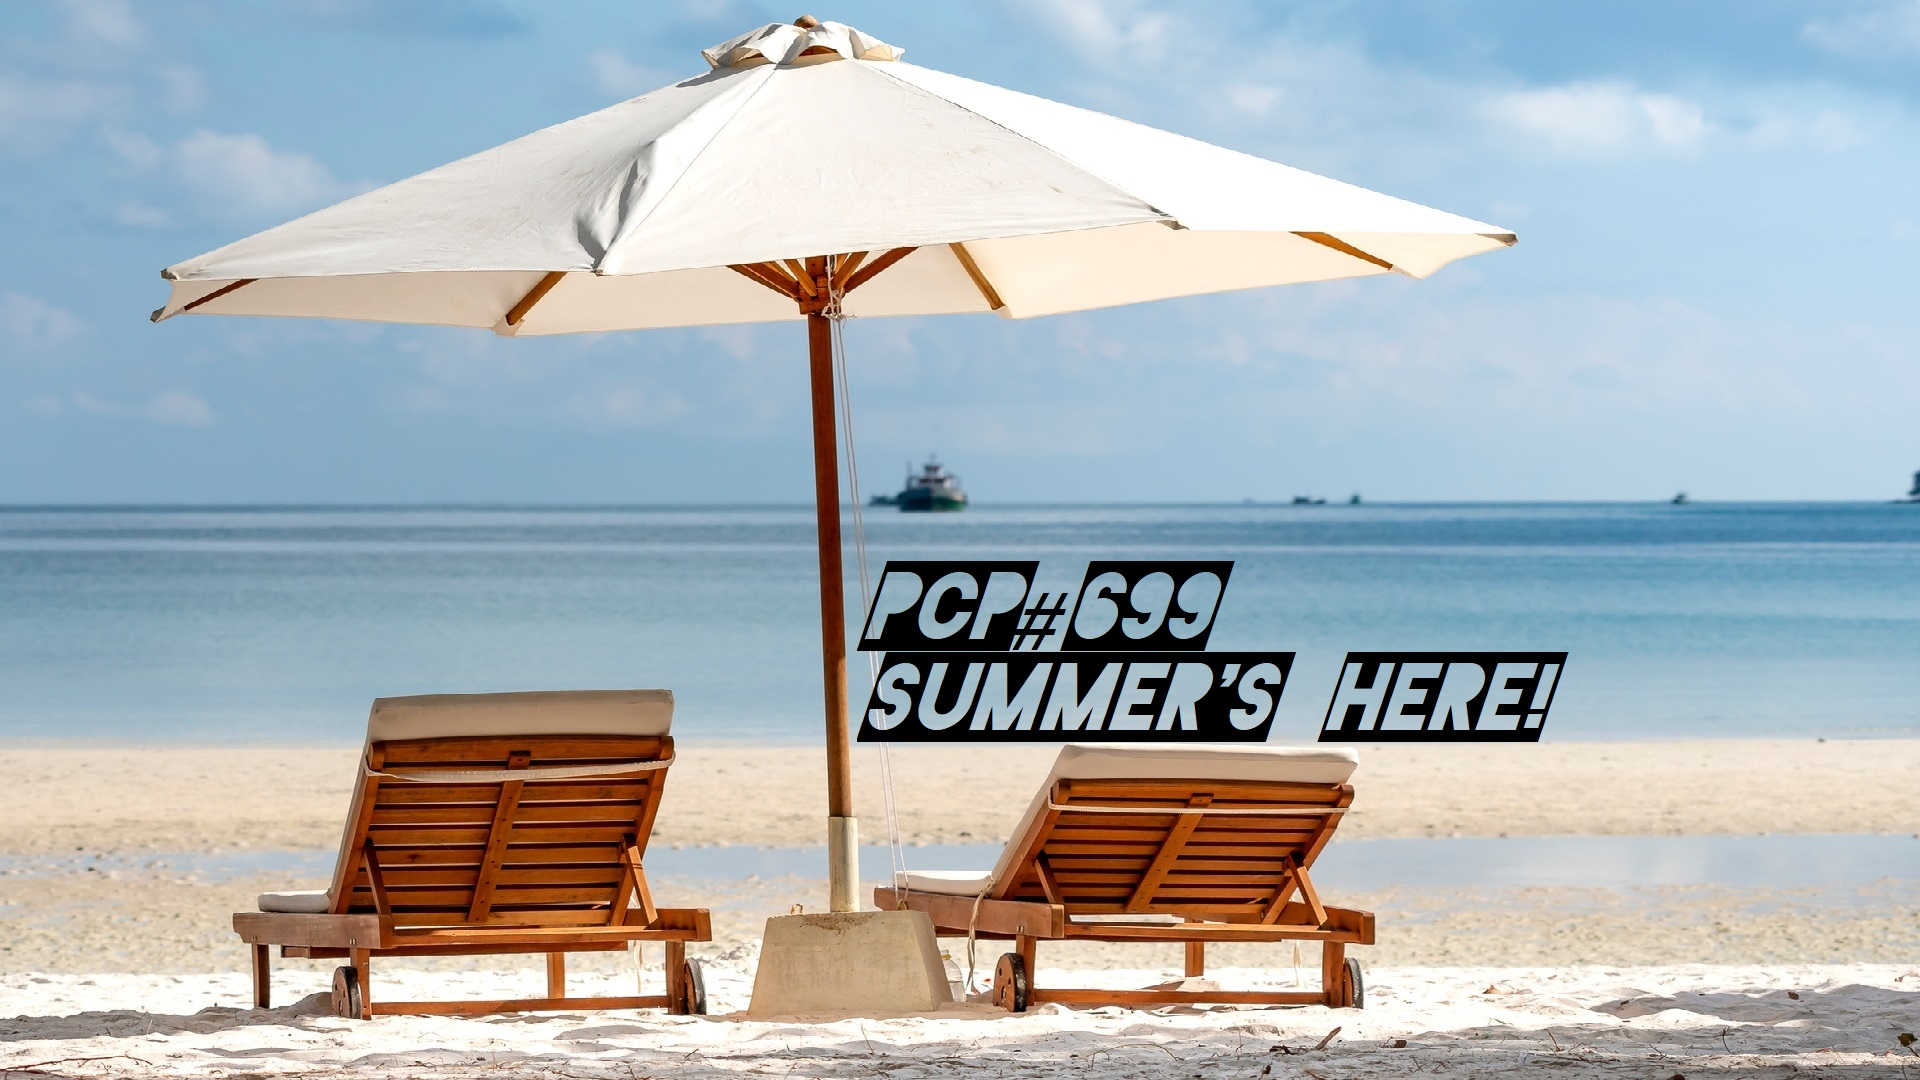 PCP#699... Summer's Here!.....